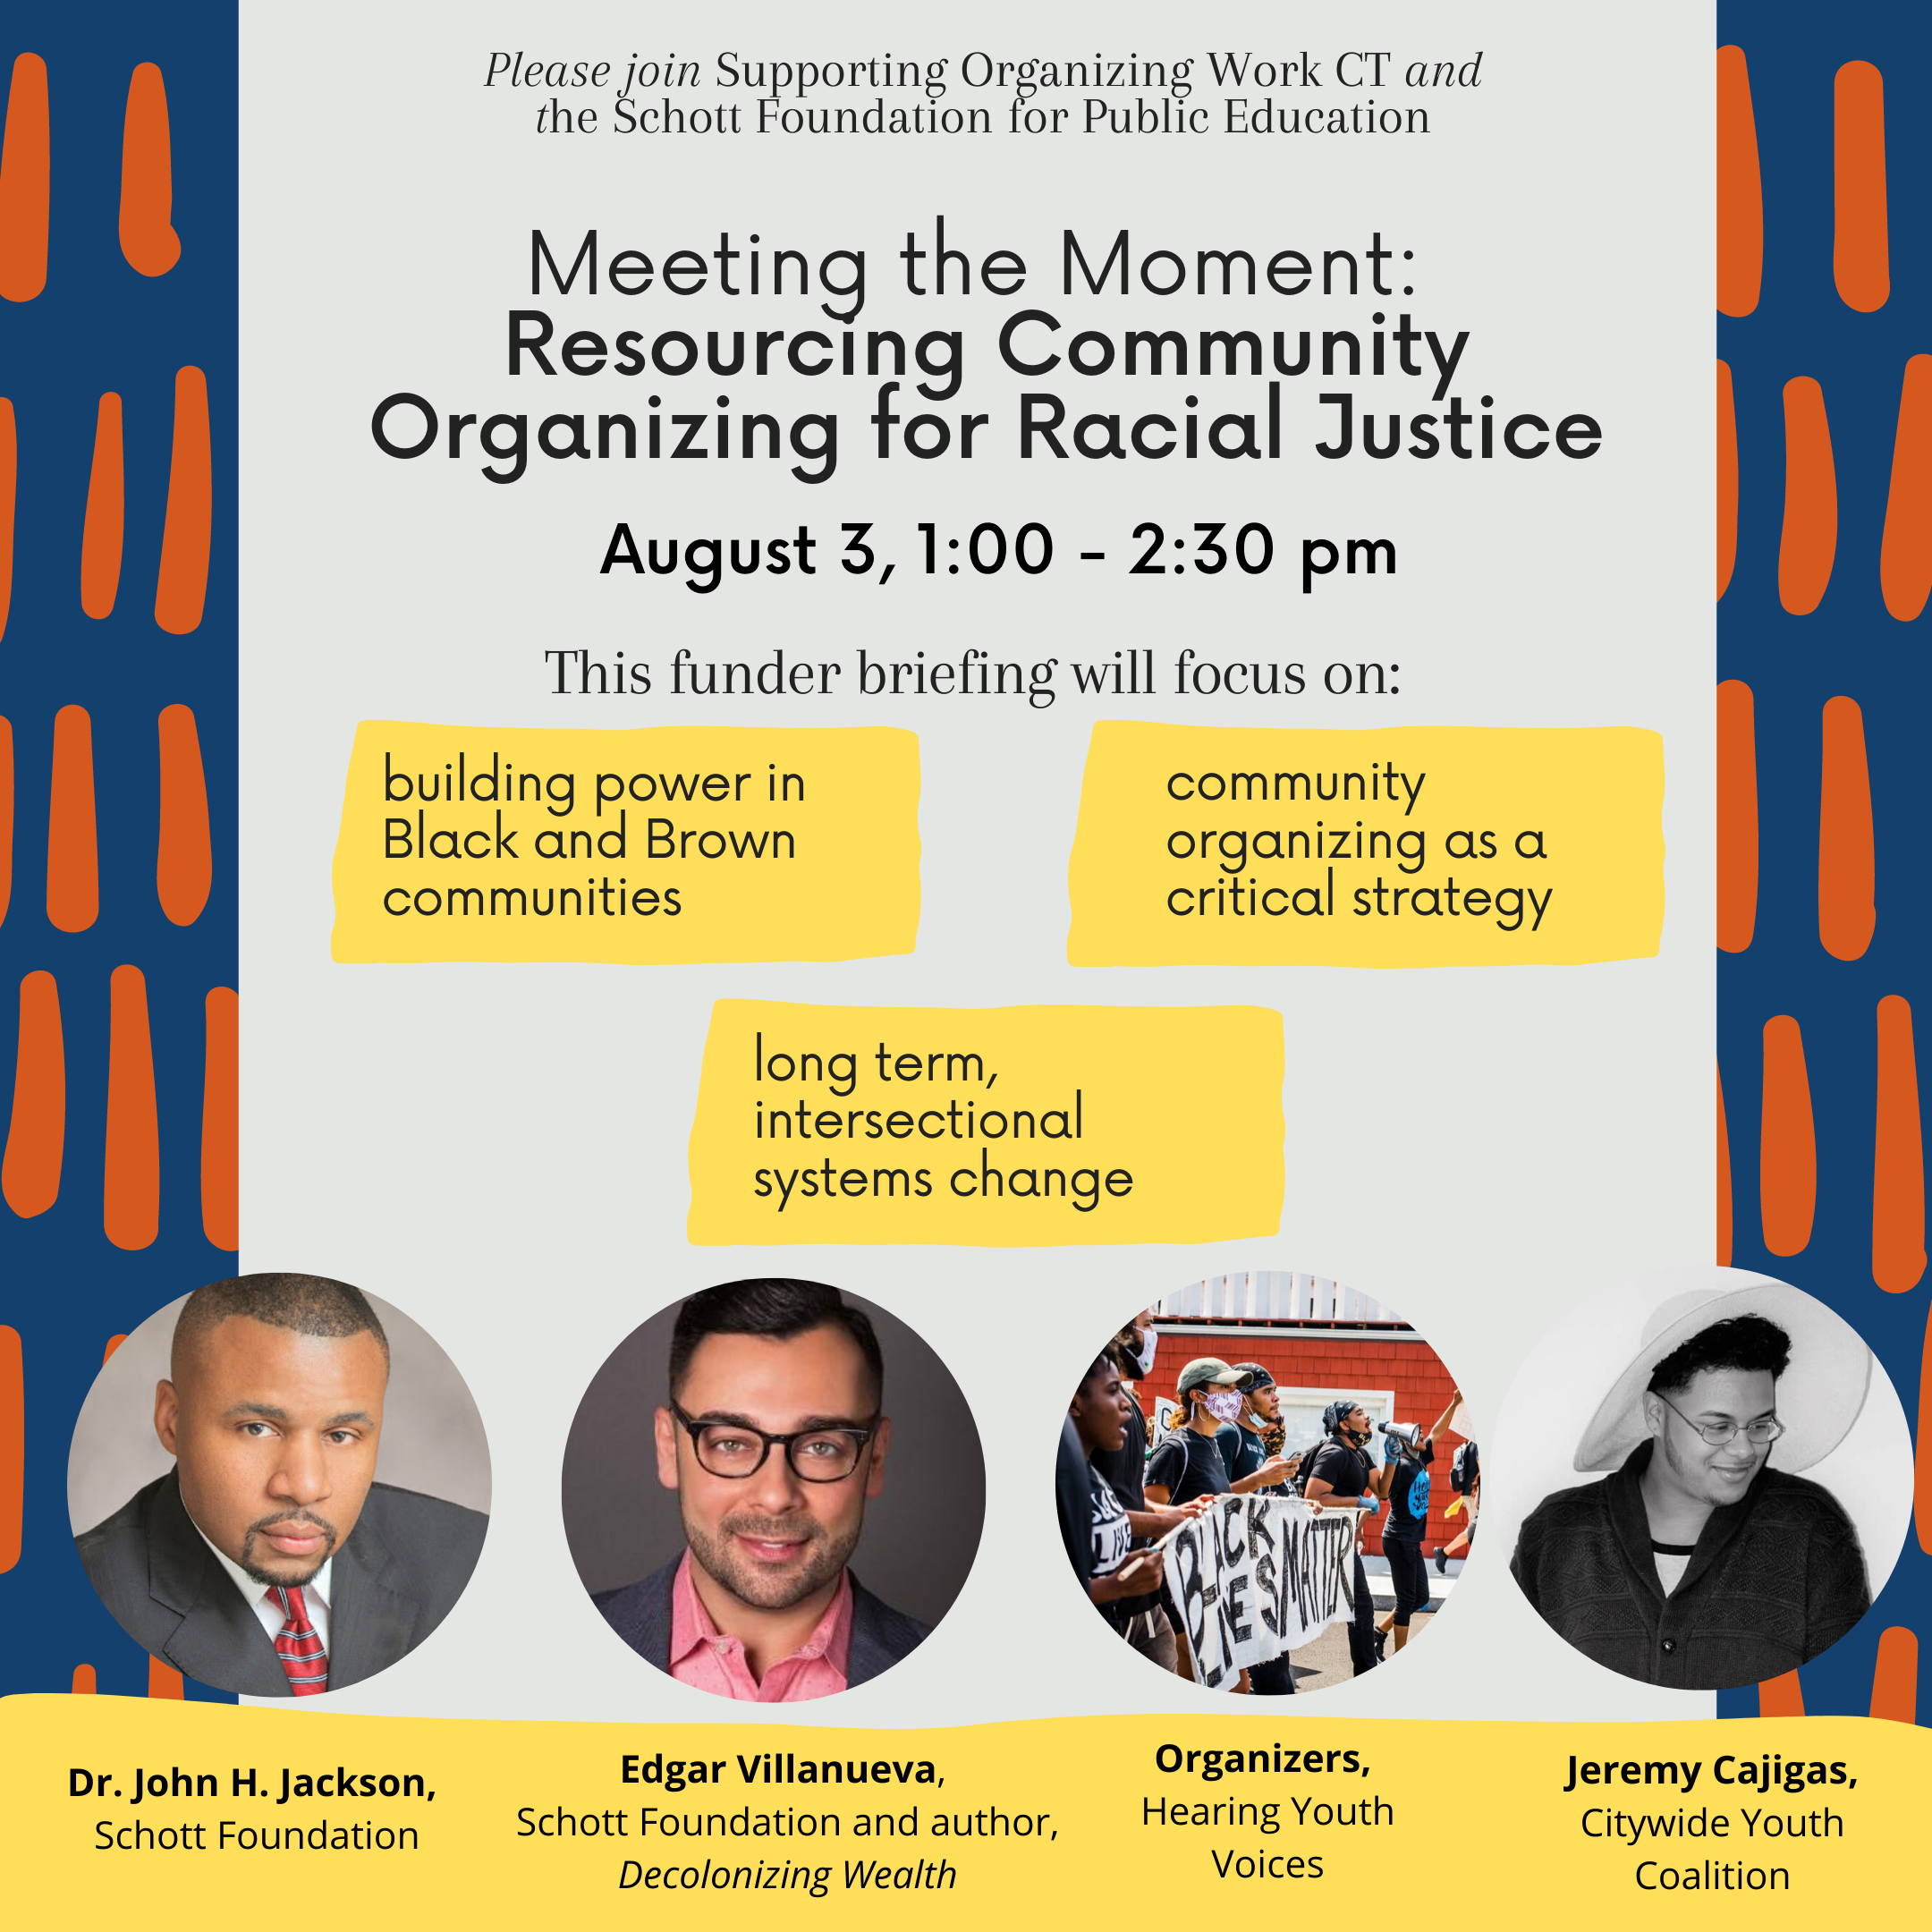 Invitation: Join SOW-CT on Aug 3, for a funder briefing on building power in Black and Brown communities and the role of community organizing as a critical strategy for advancing racial justice.